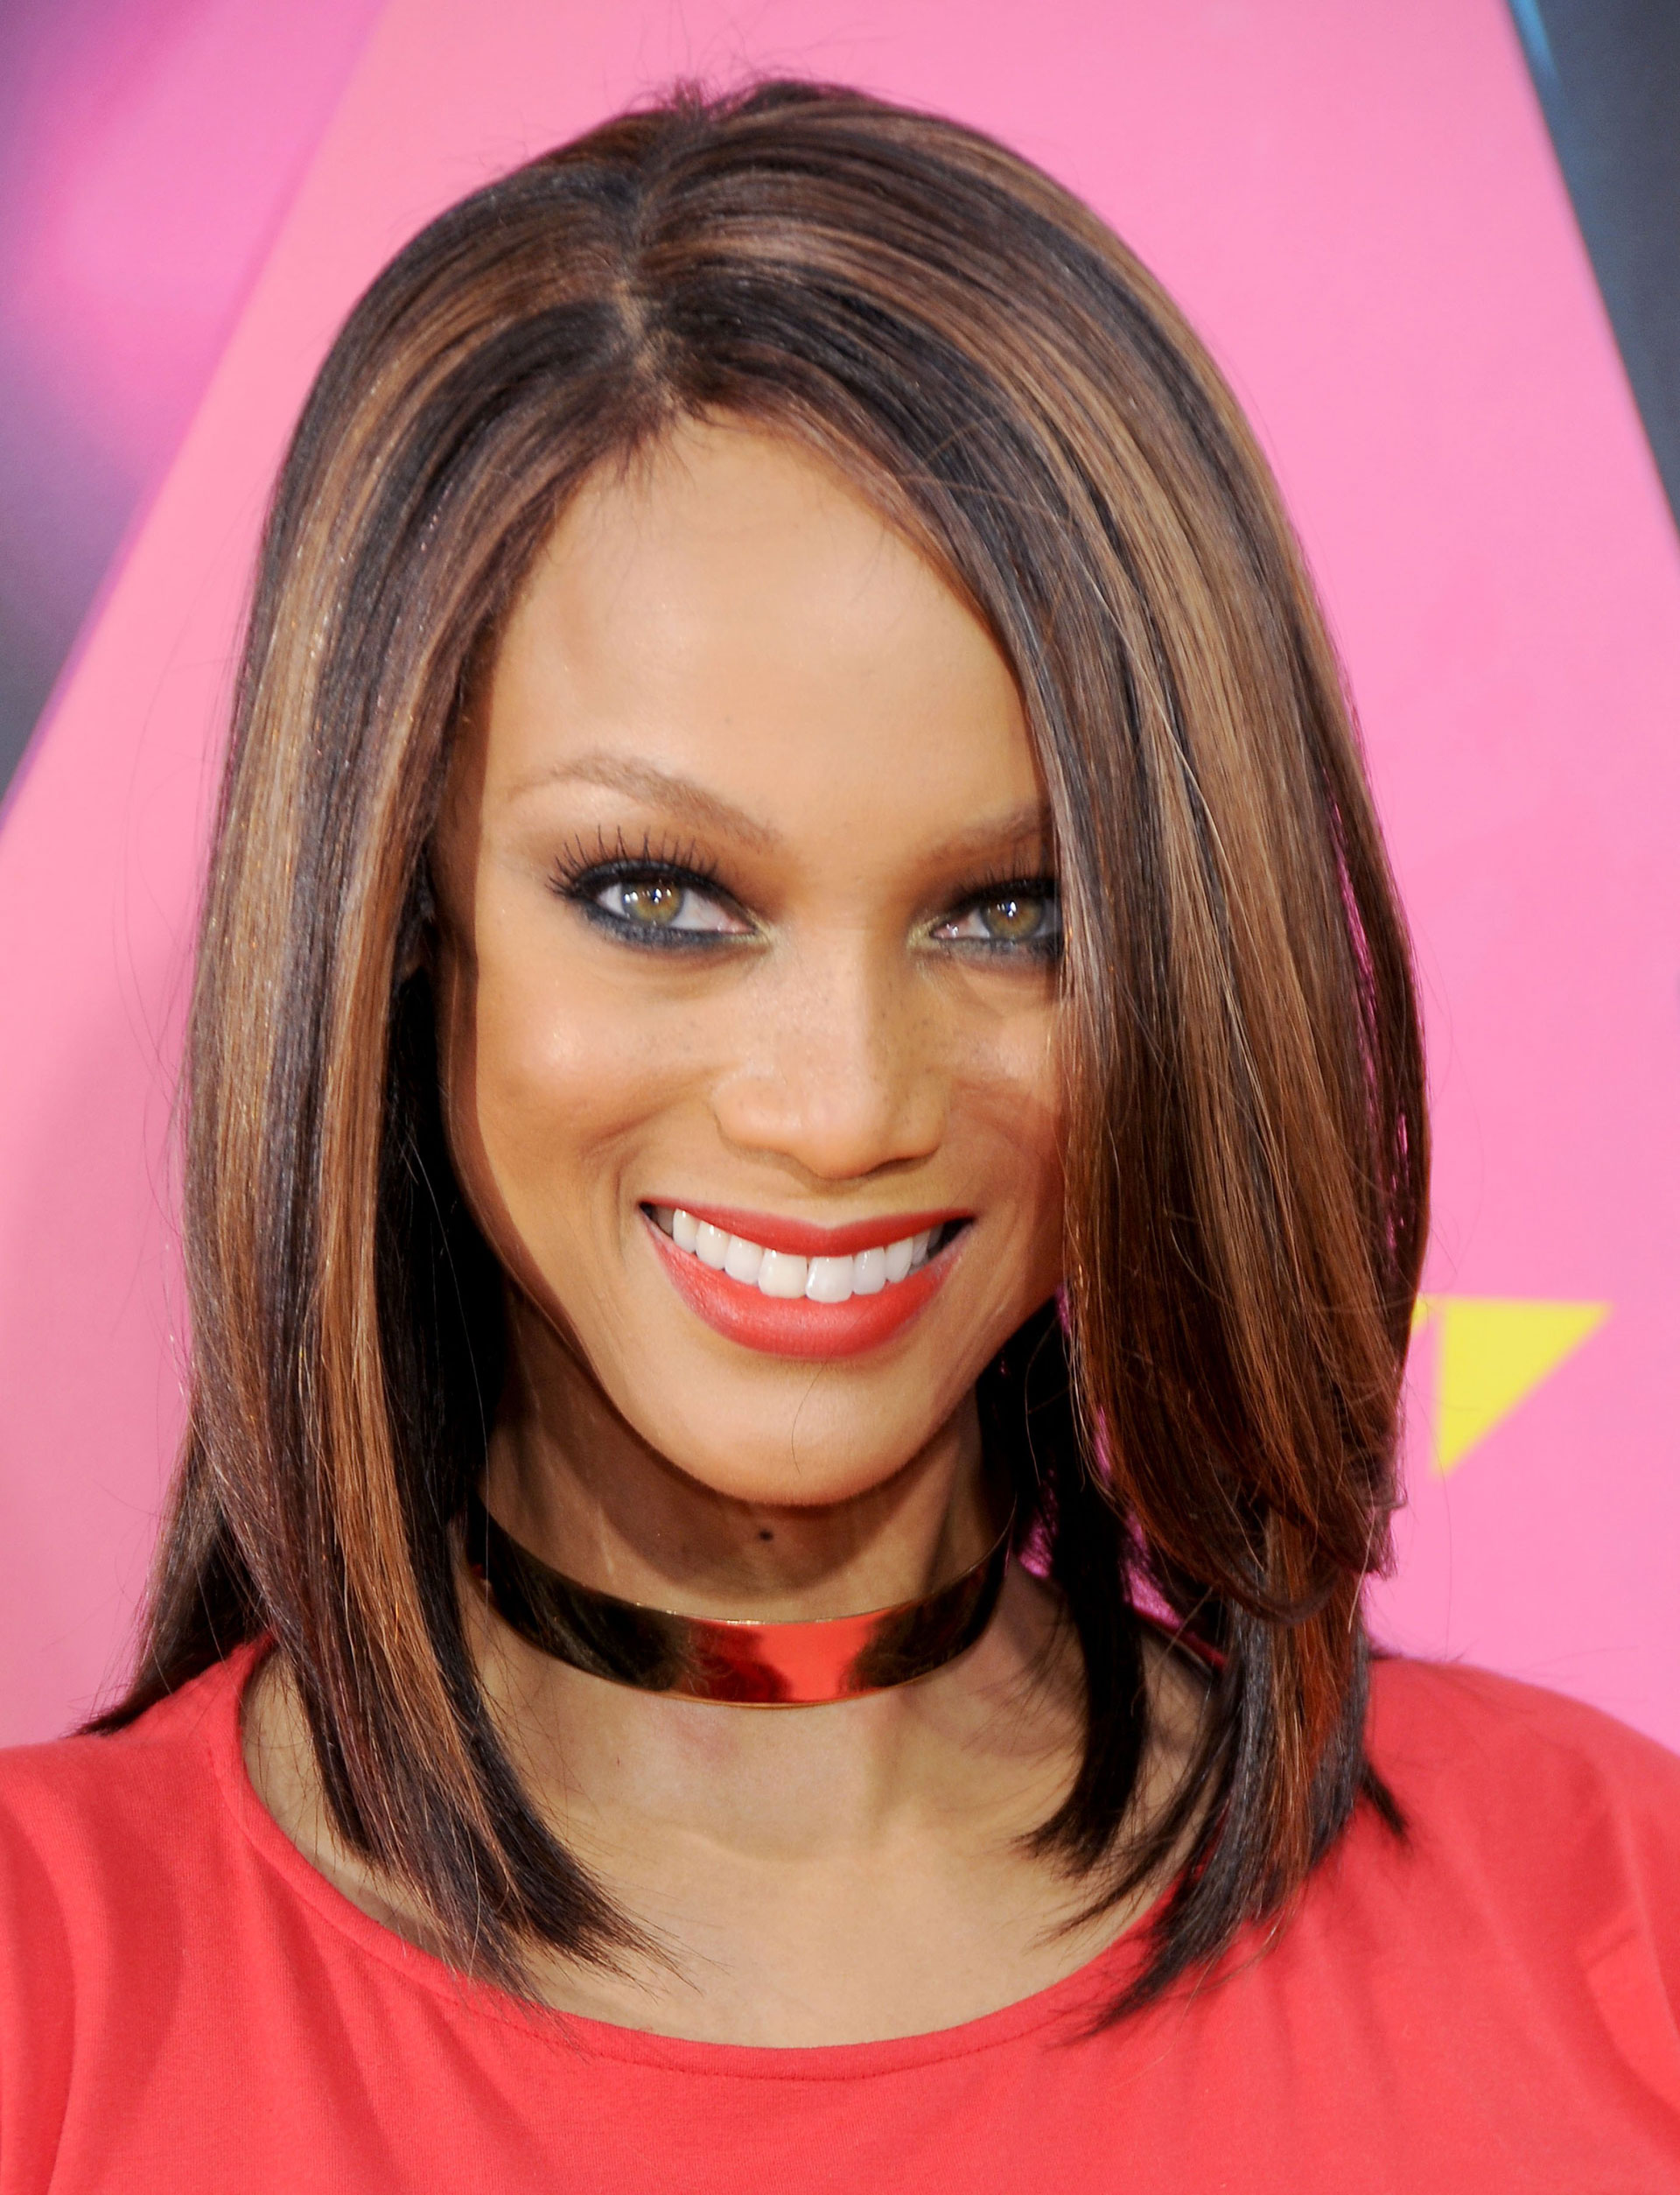 Tremendous Best Haircuts For Women Haircuts For Every Hair Type Hairstyles For Women Draintrainus